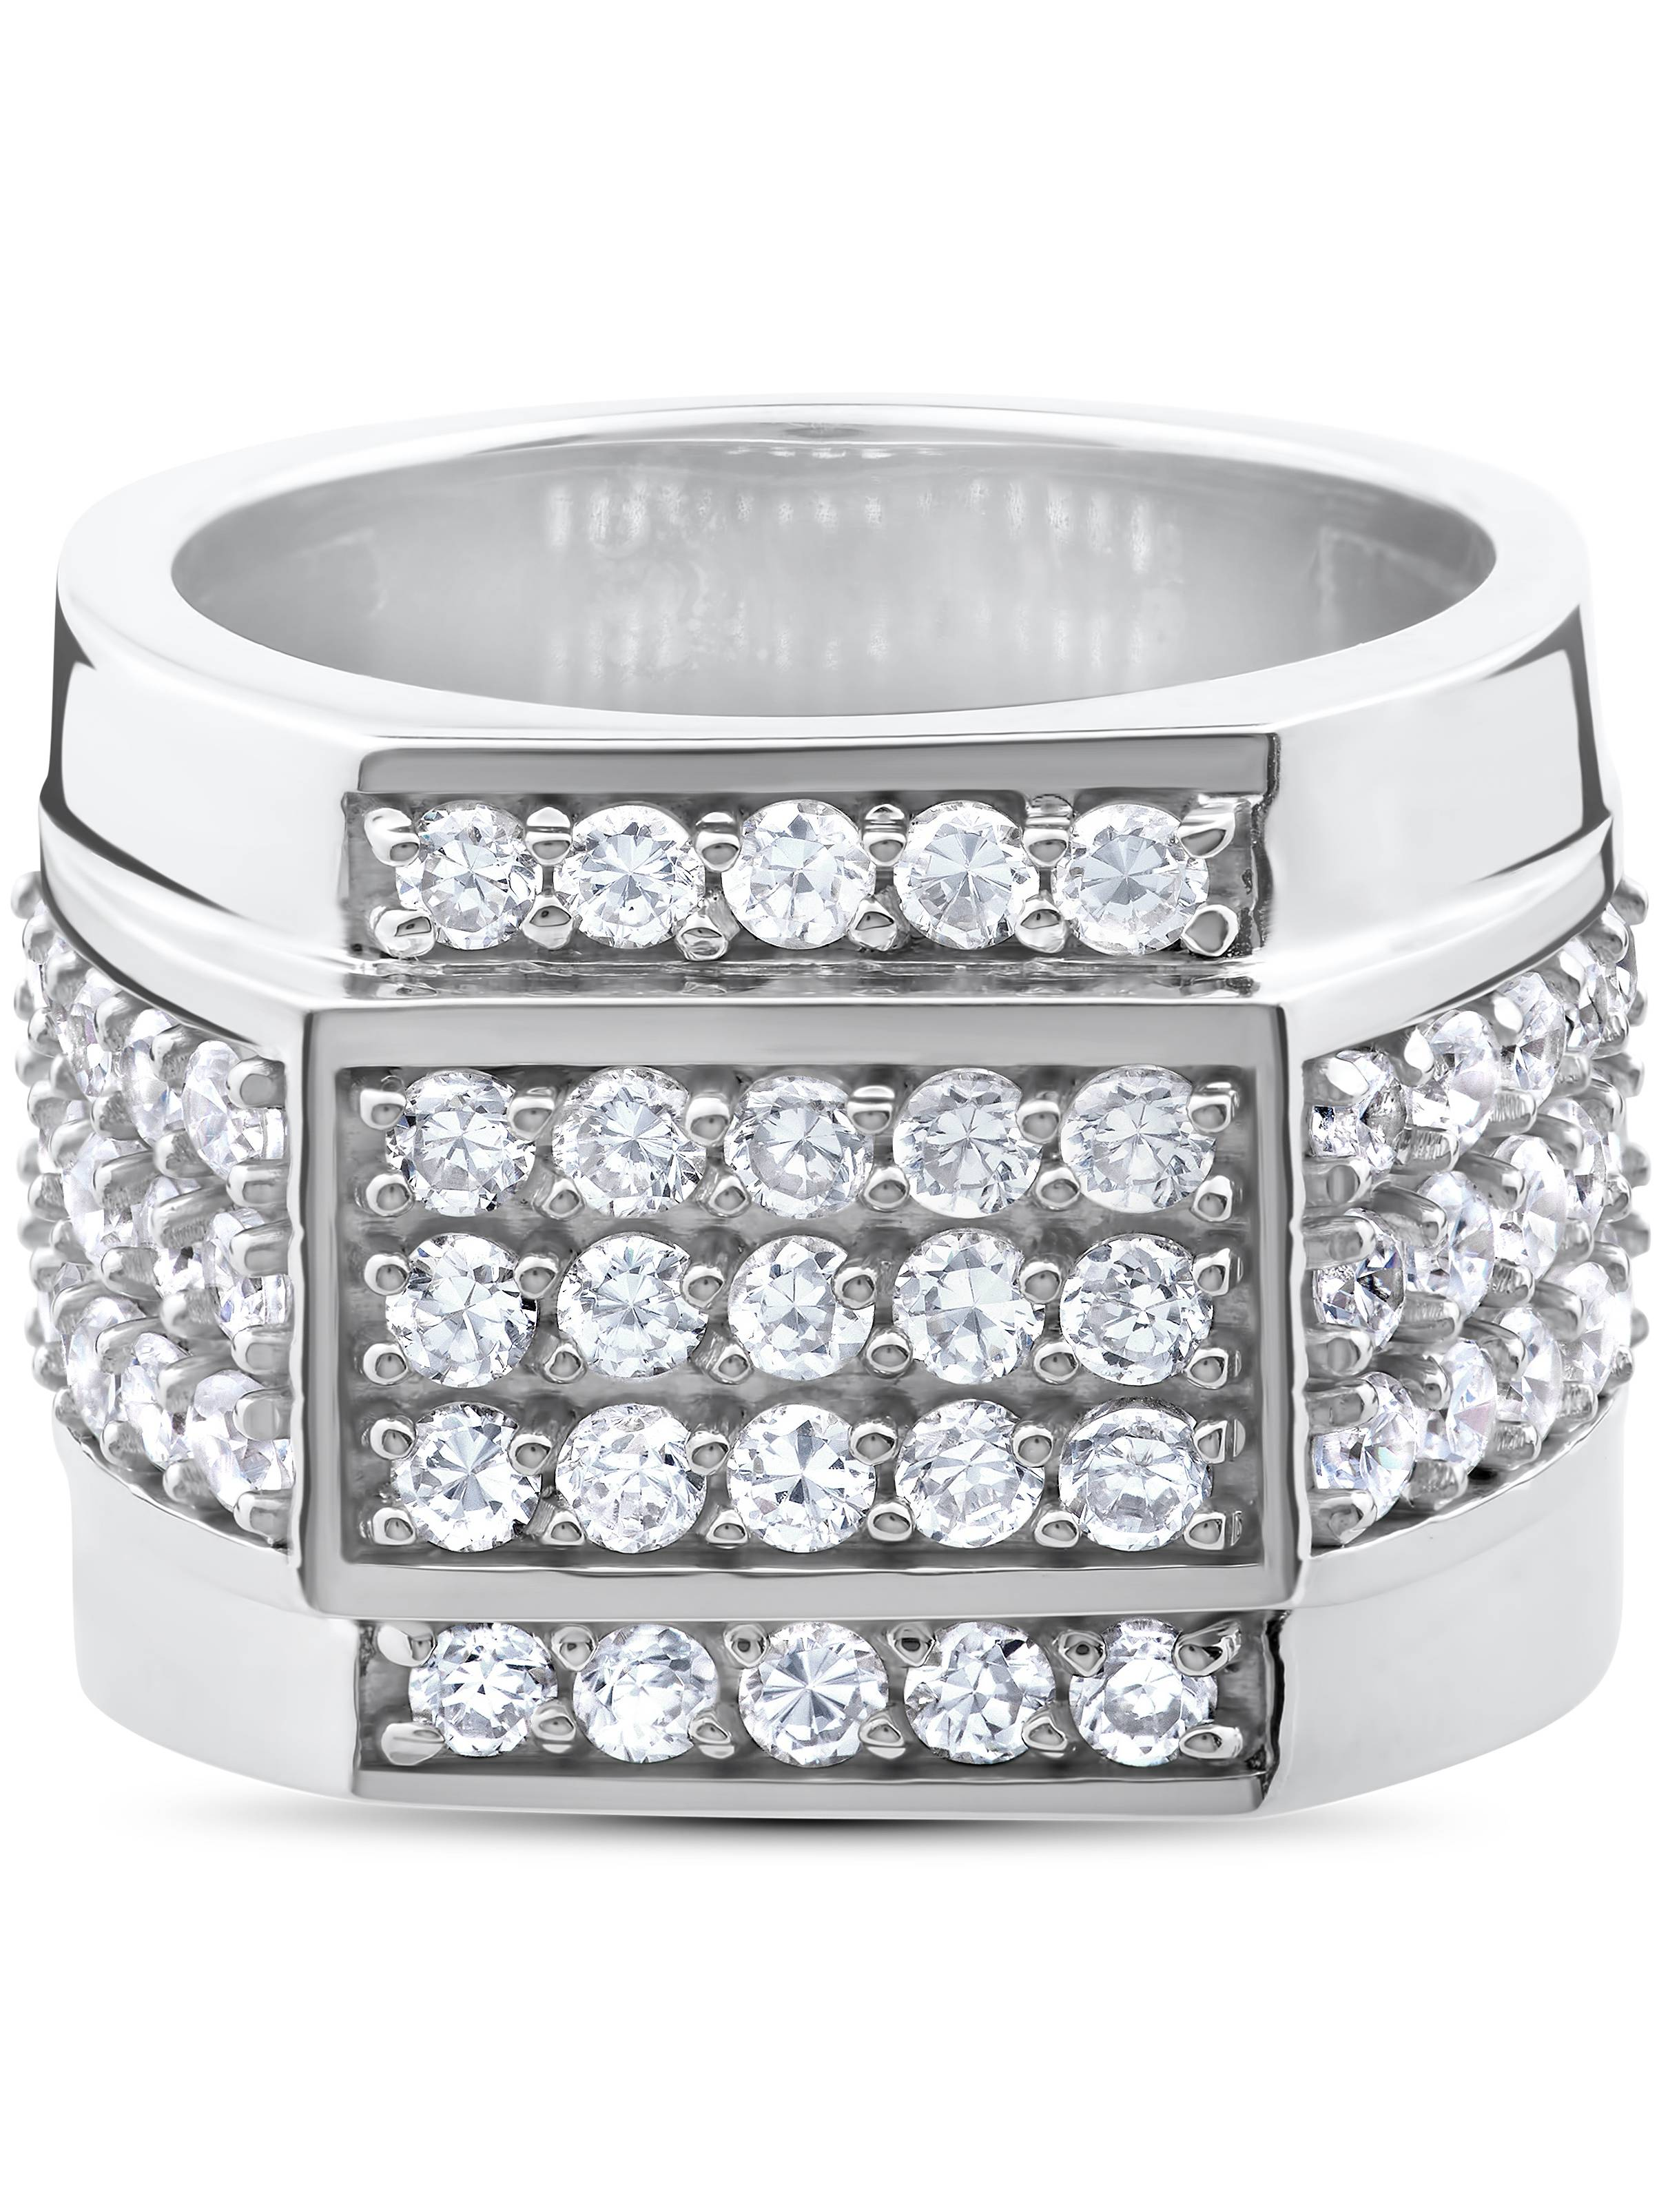 2 ct HUGE Mens Diamond 15MM Wide High Polished Flashy Bling Ring White Gold by Pompeii3